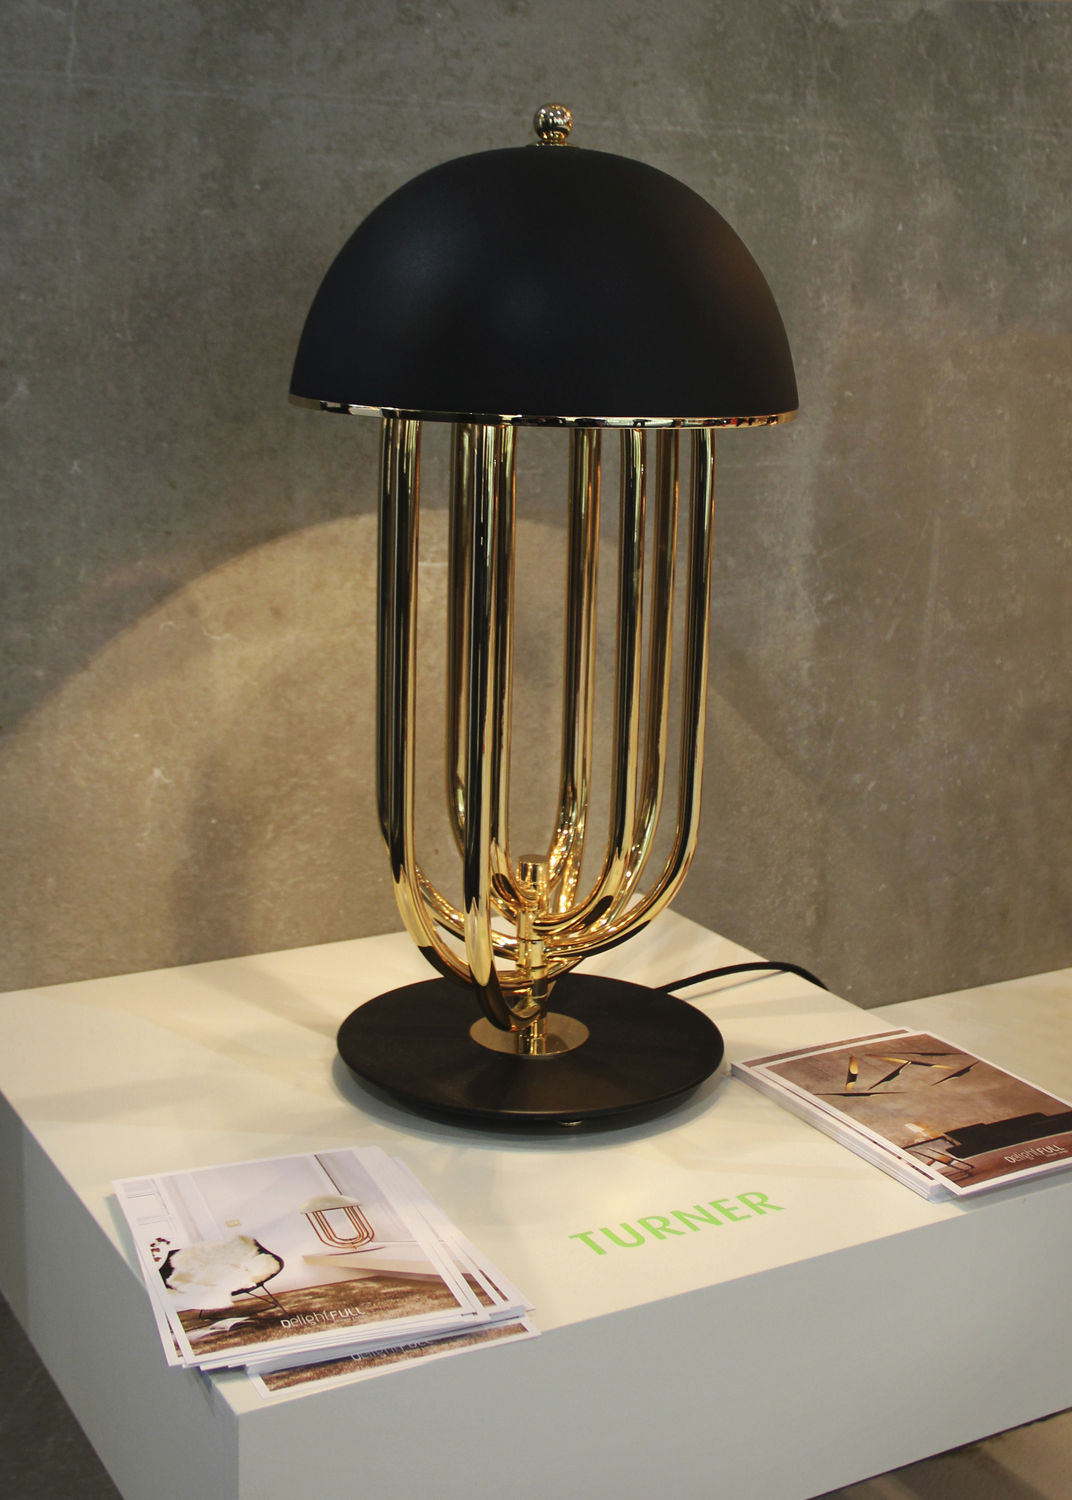 Turner Table Lamp Is Ready To Be Sent To Your House Design 6 Turner Table Lamp Turner Table Lamp Is Ready To Be Sent To Your House Design Turner Table Lamp Is Ready To Be Sent To Your House Design 6